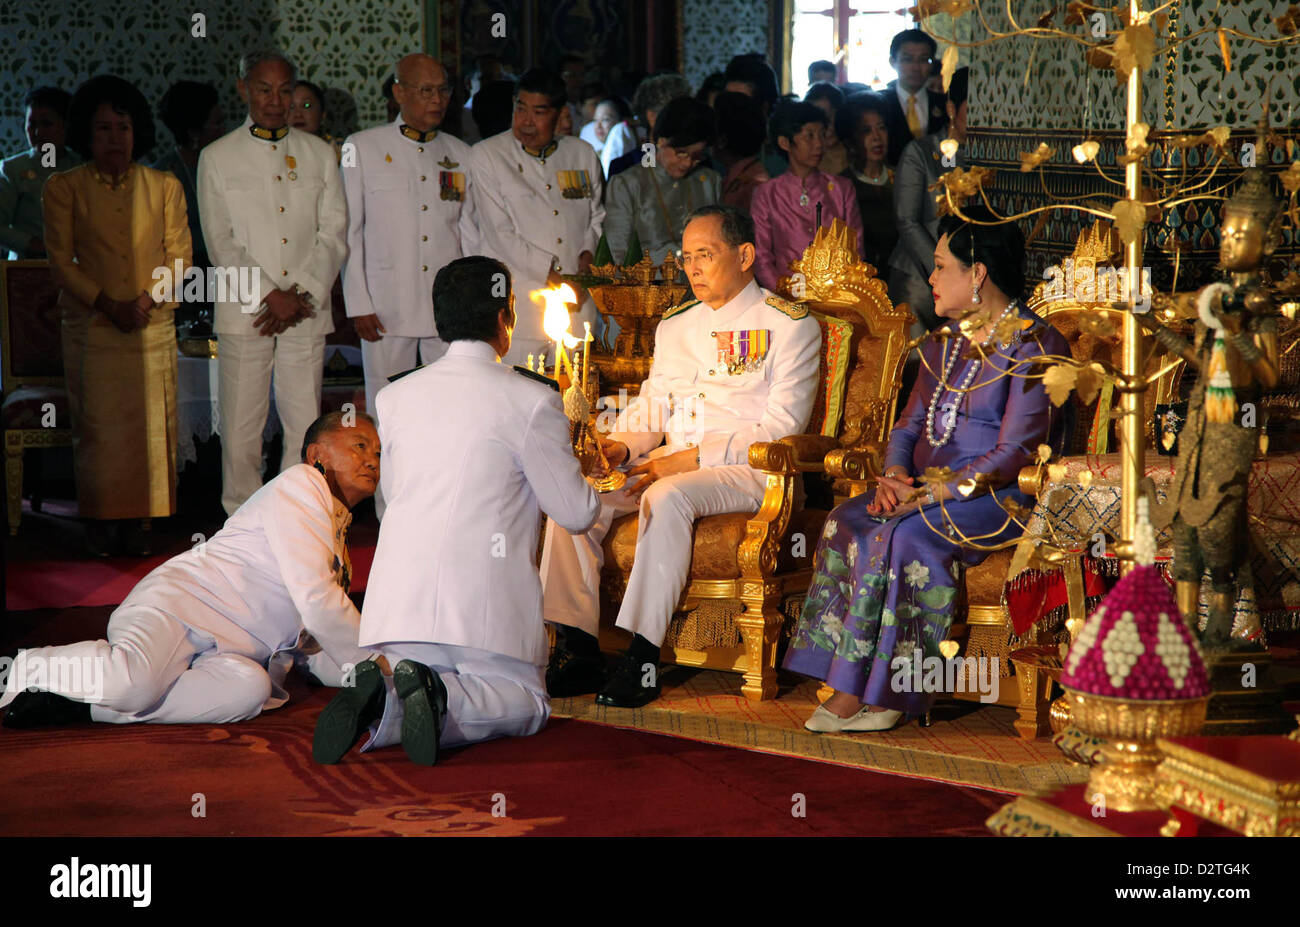 Thailand's monarch Bhumibol Adulyadej and Queen Sirikit preside over a ceremony organised to mark the Coronation - Stock Image